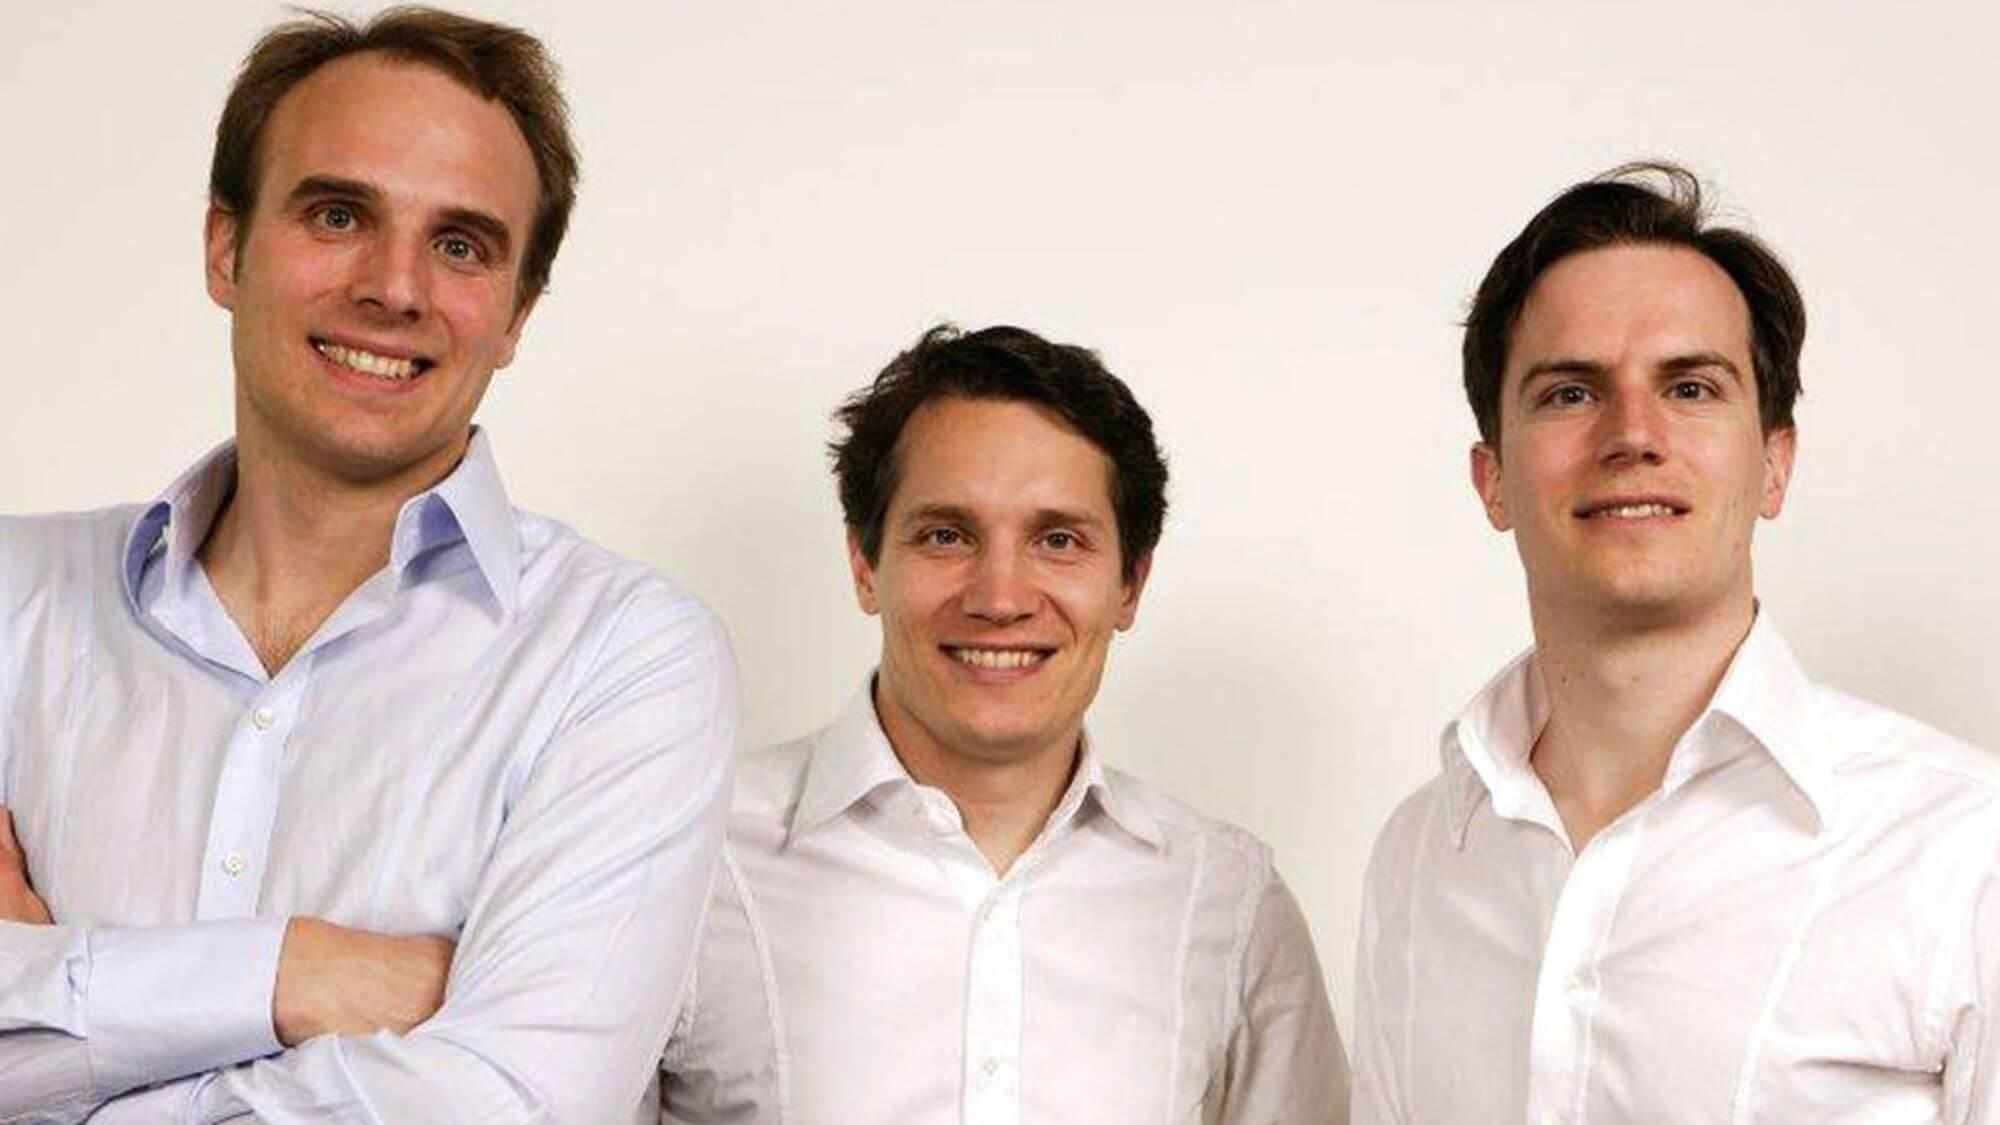 marc oliver et alexander samwer start up rocket internet devenir entrepeuneur